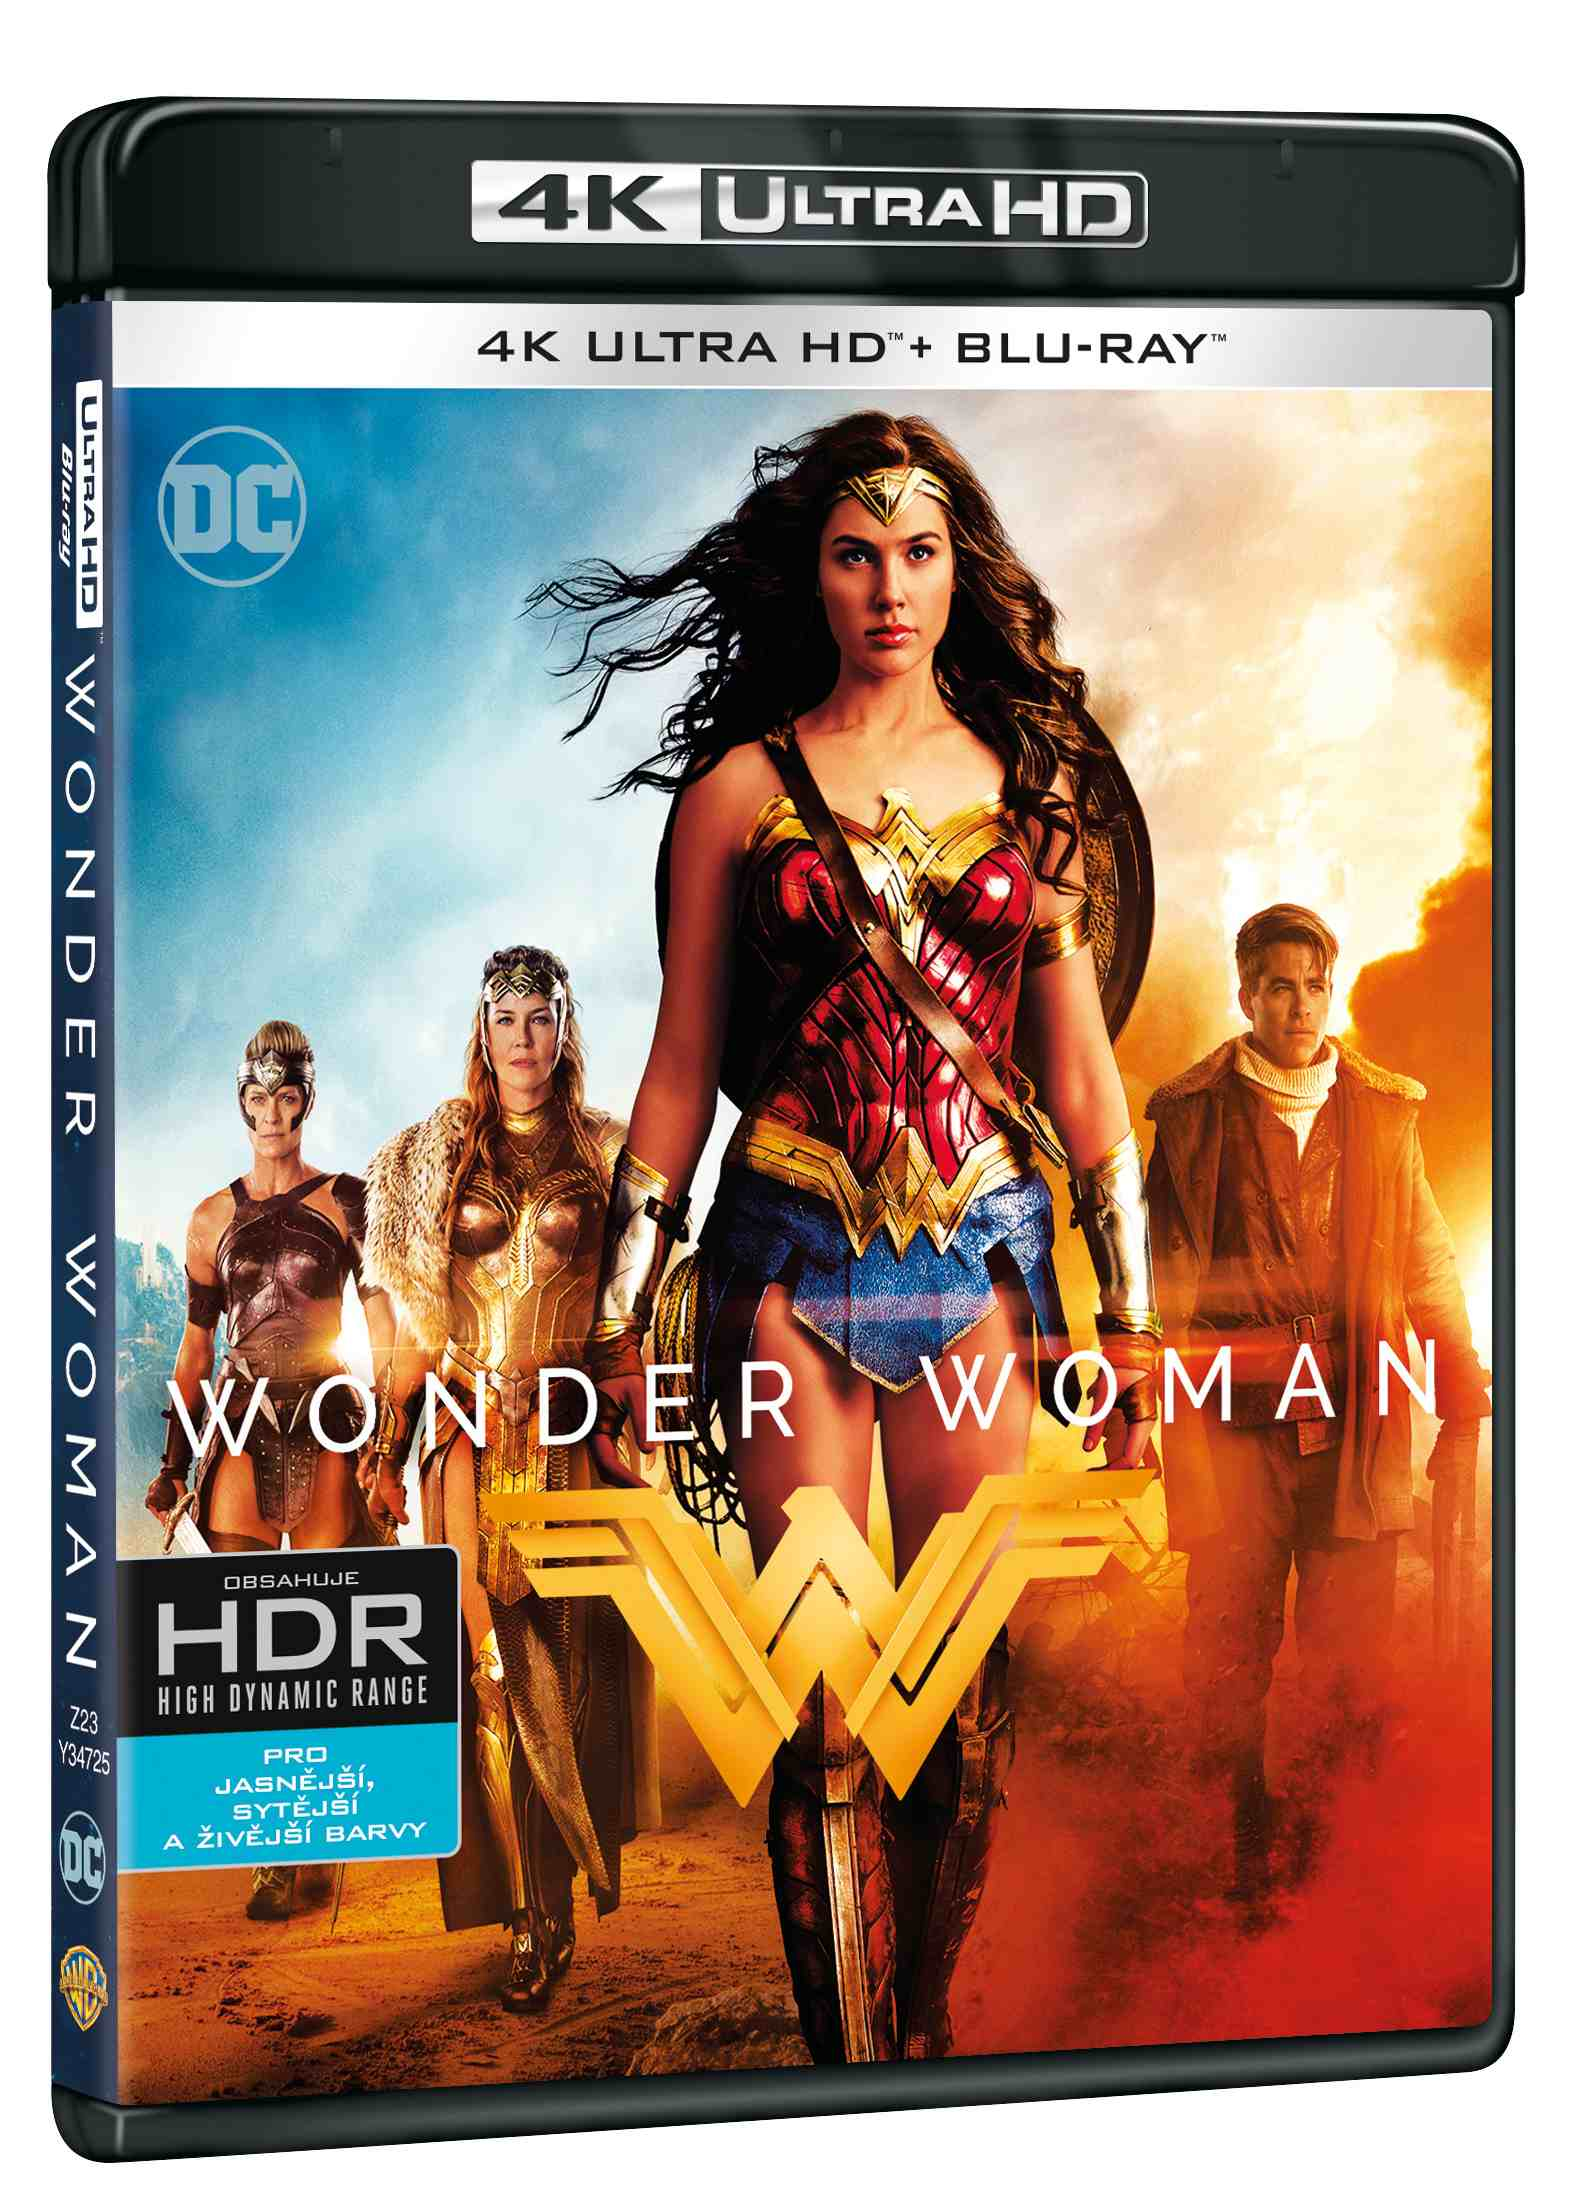 WONDER WOMAN (4K ULTRA HD) - UHD Blu-ray + Blu-ray (2 BD)